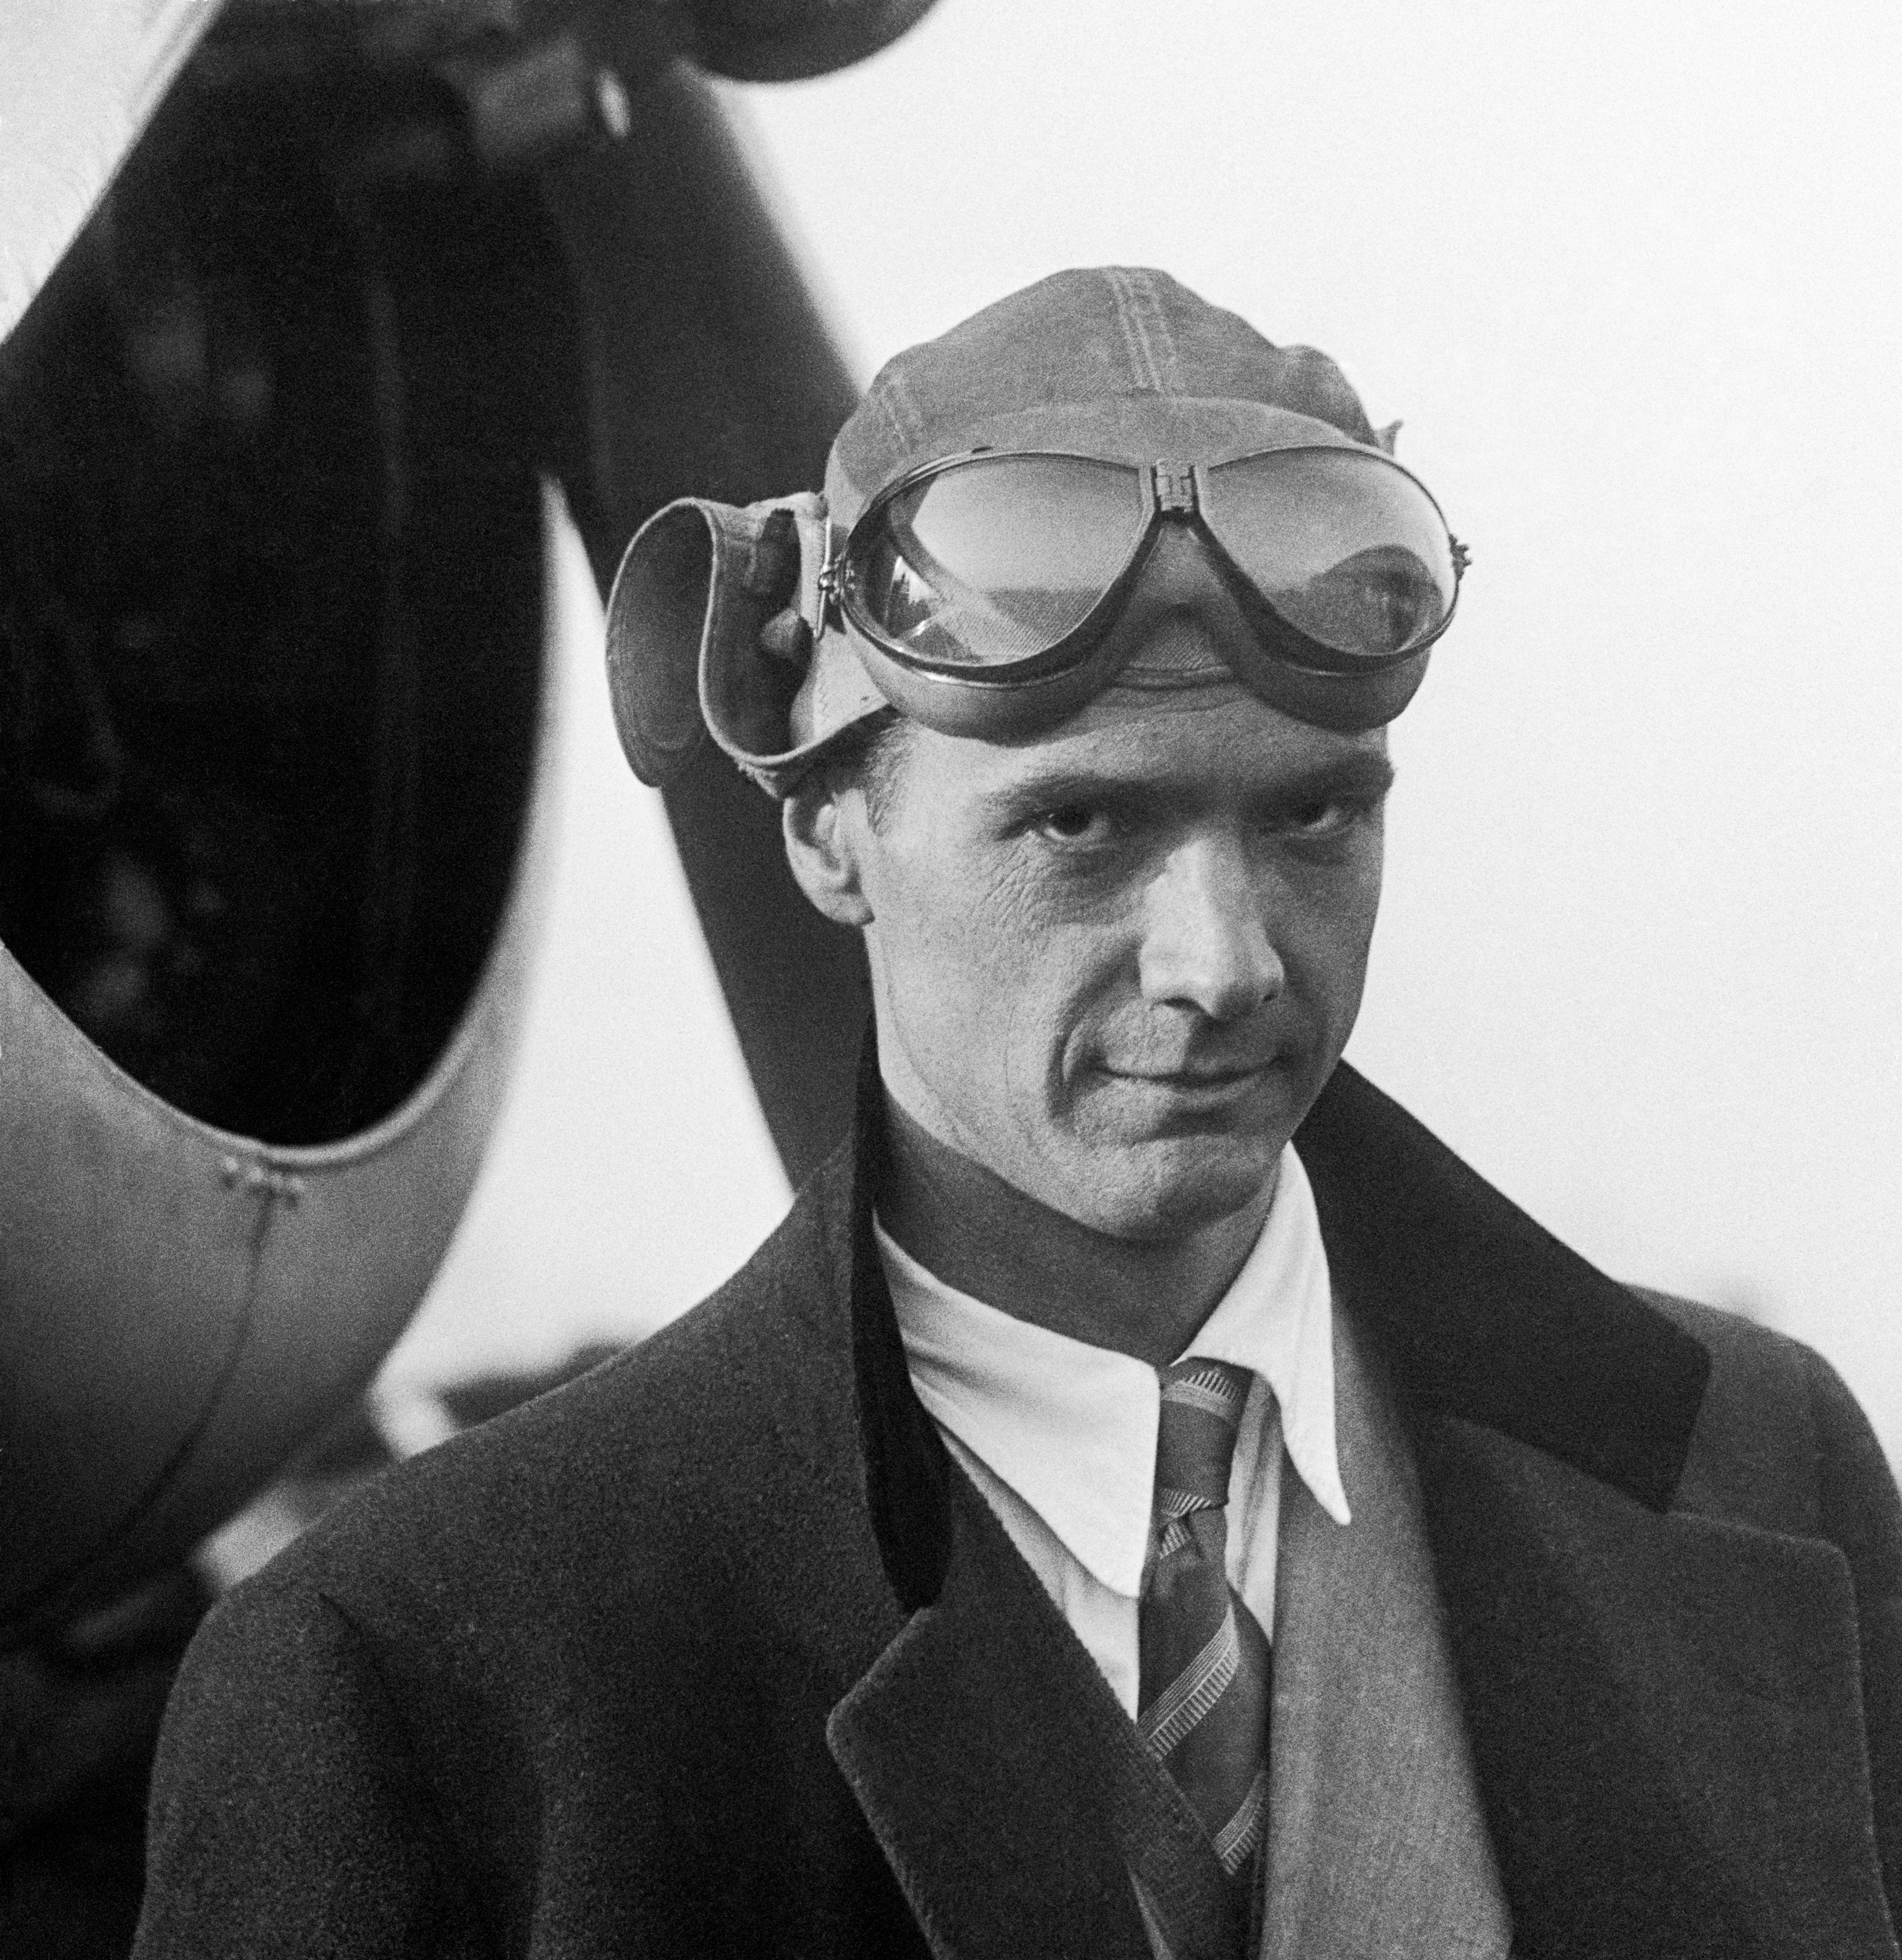 Eccentric millionaire pilot and engineer Howard Hughes   Source: Getty Images